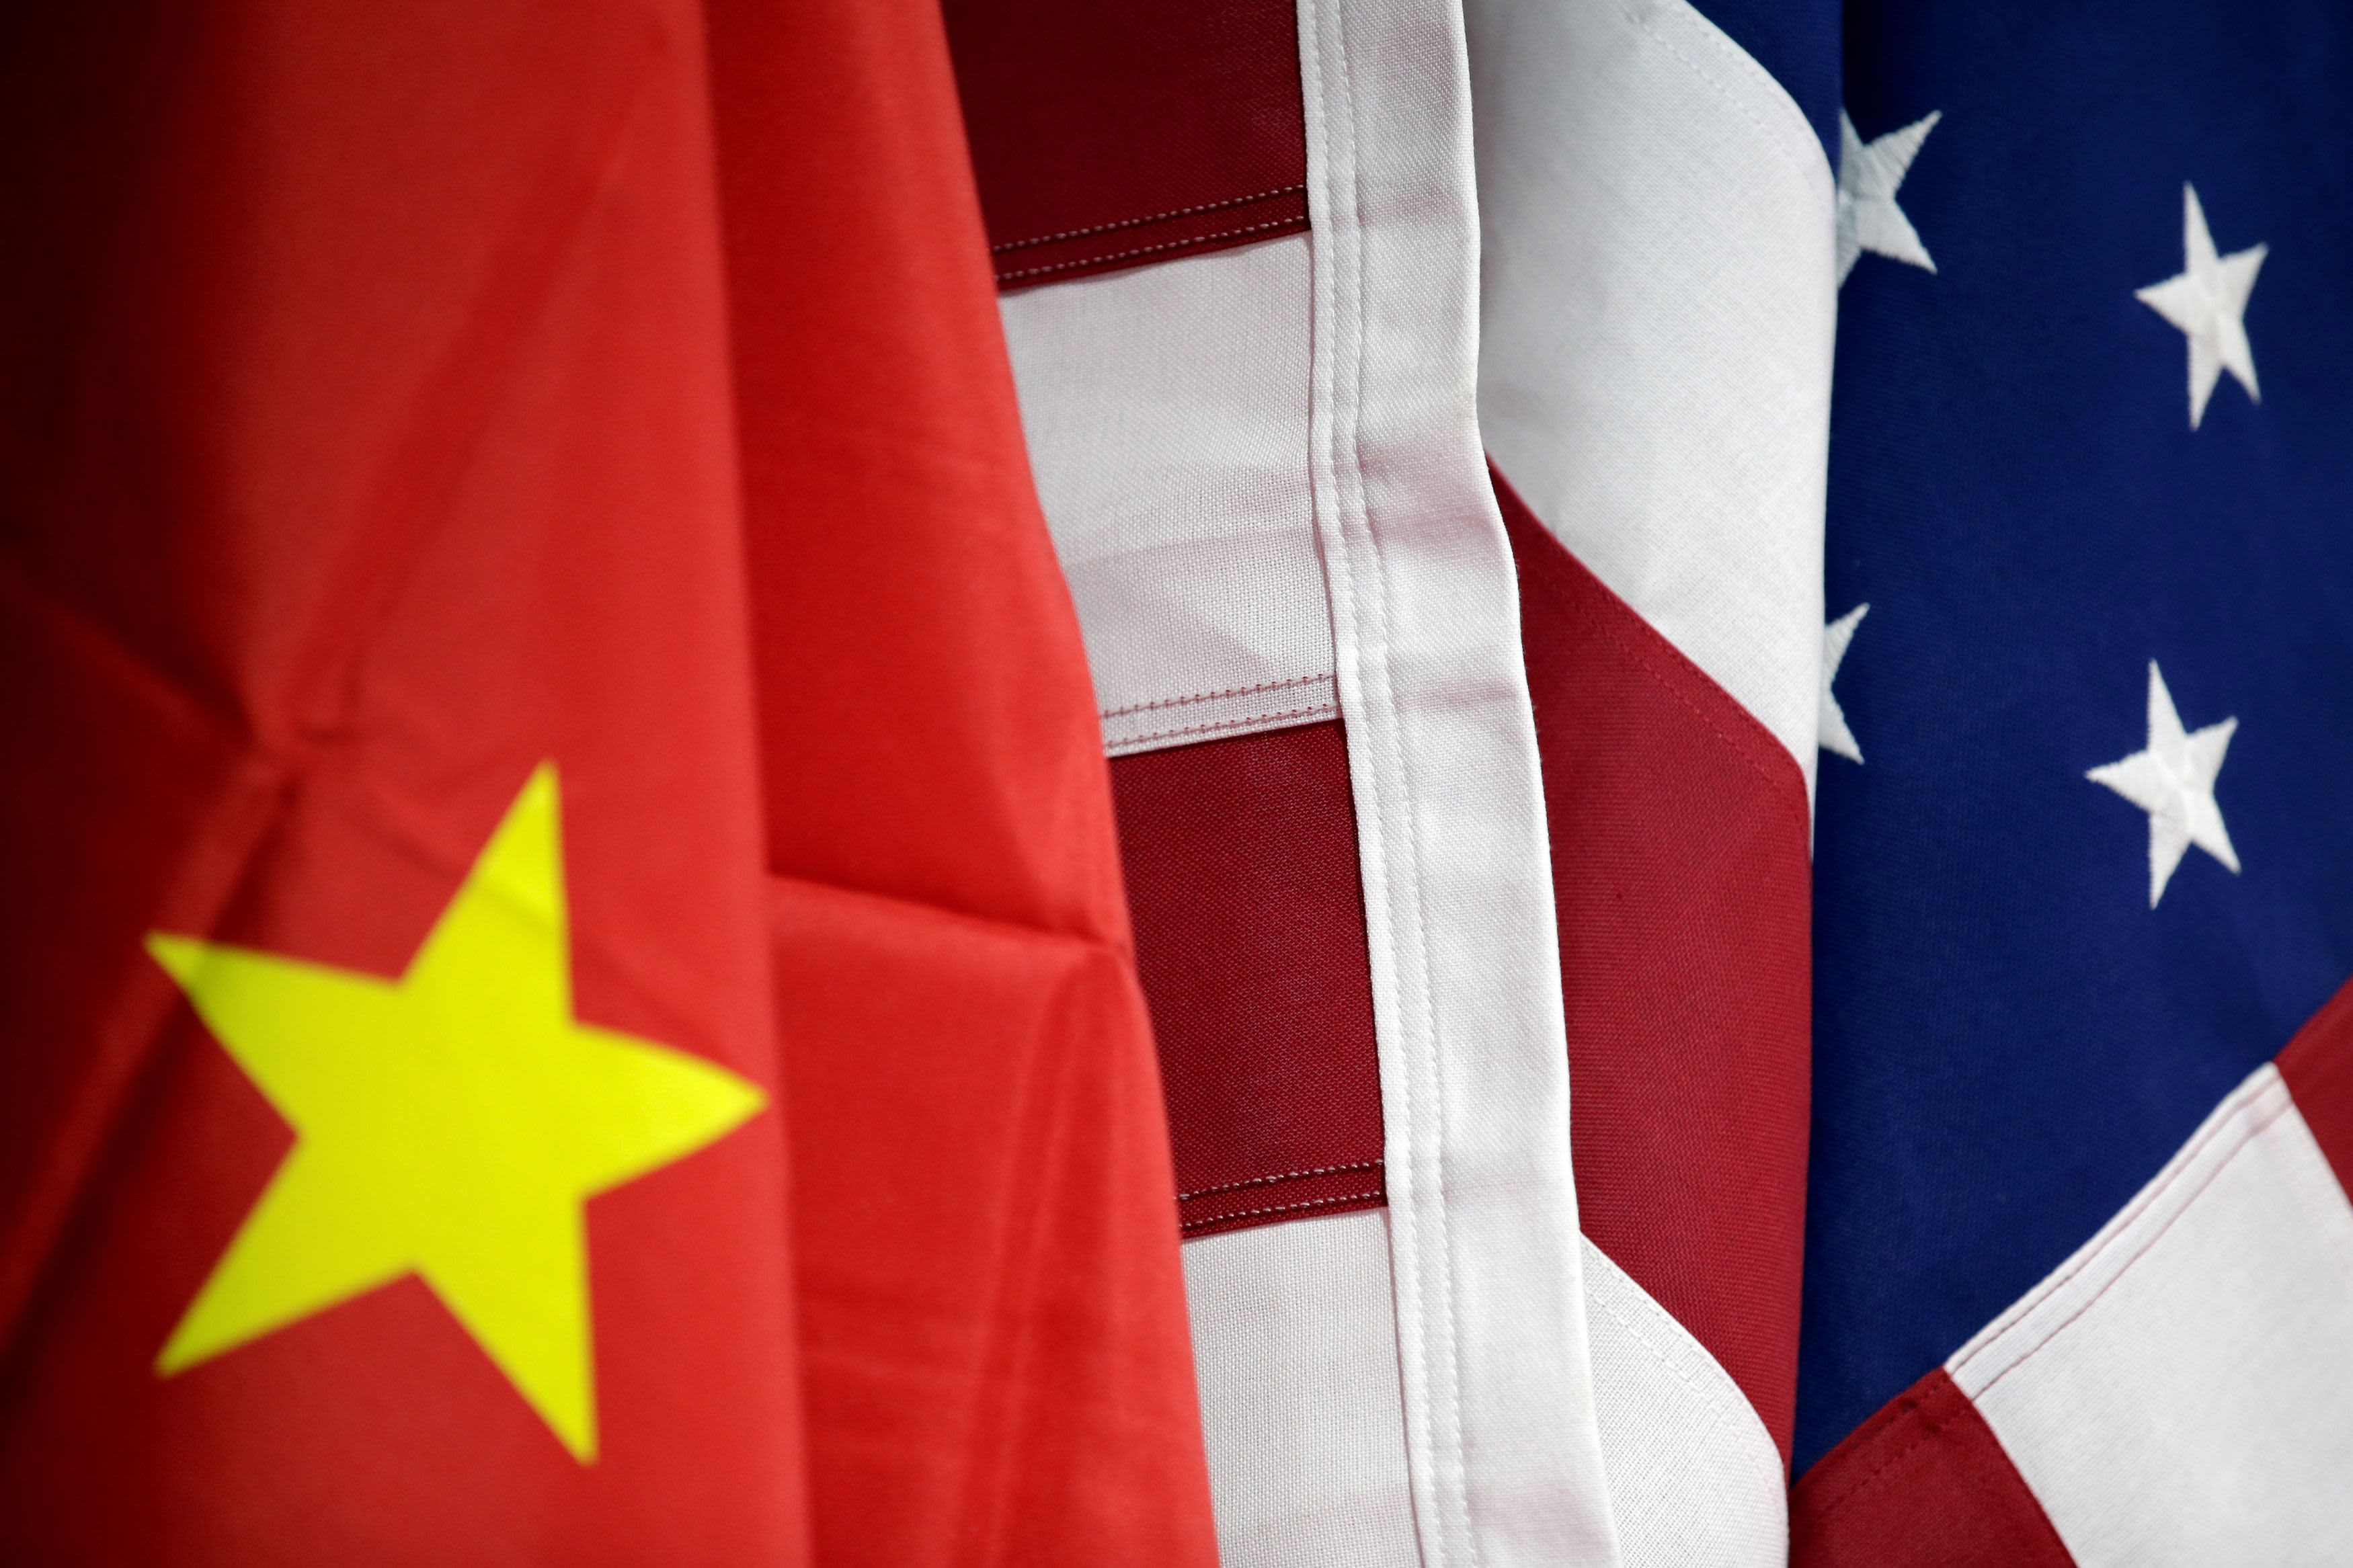 White Home says U.S.-China commerce deal amongst points in broad evaluation